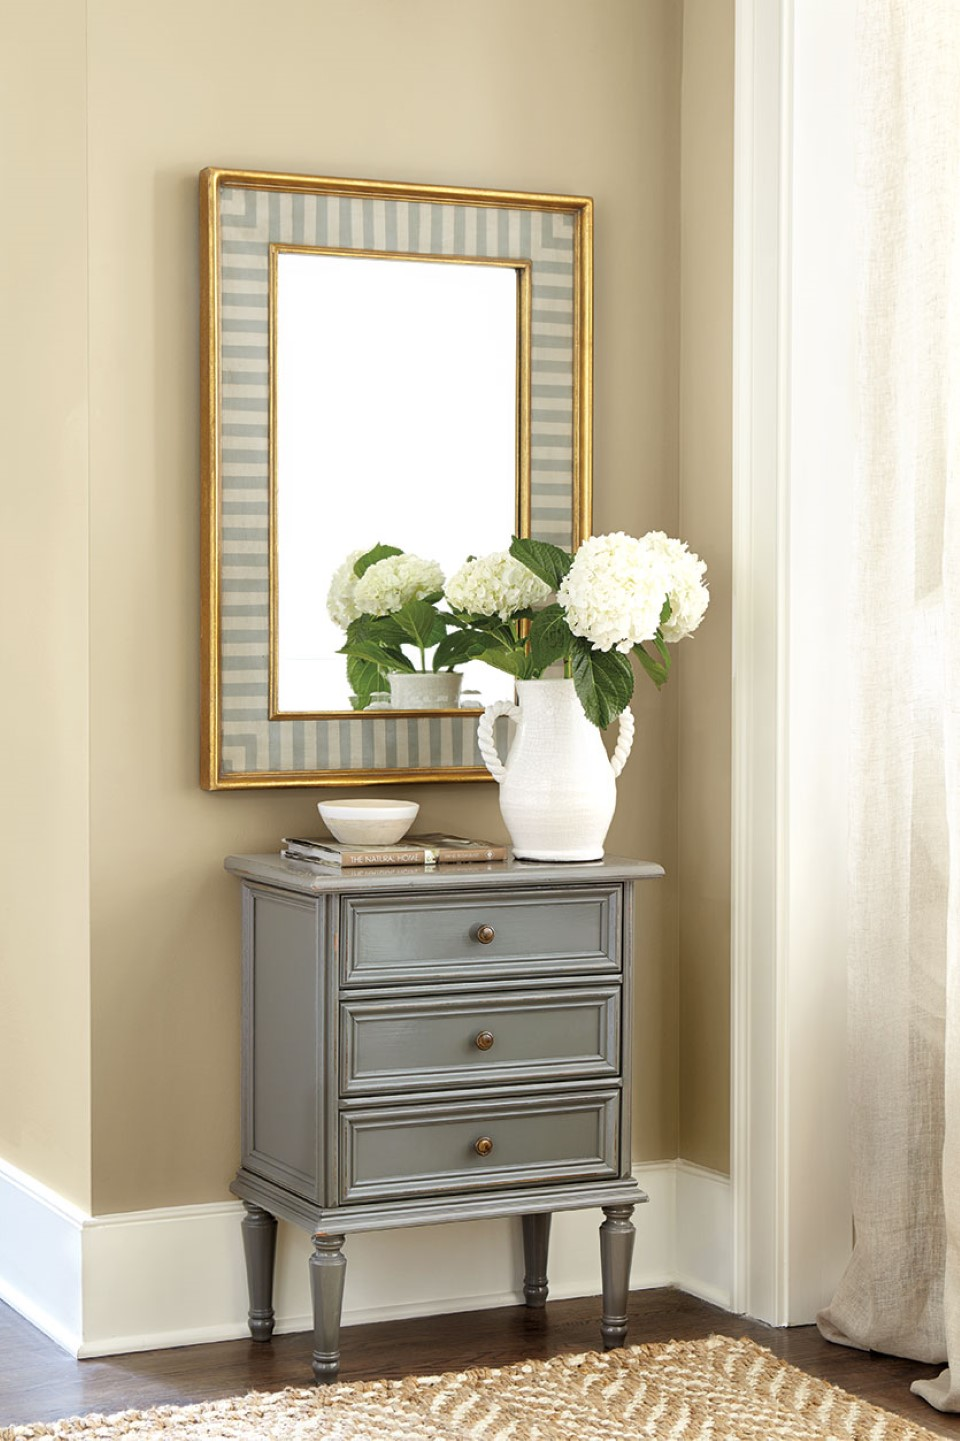 Small Console Table for Hallway – Perfect Icon to Fill the ...